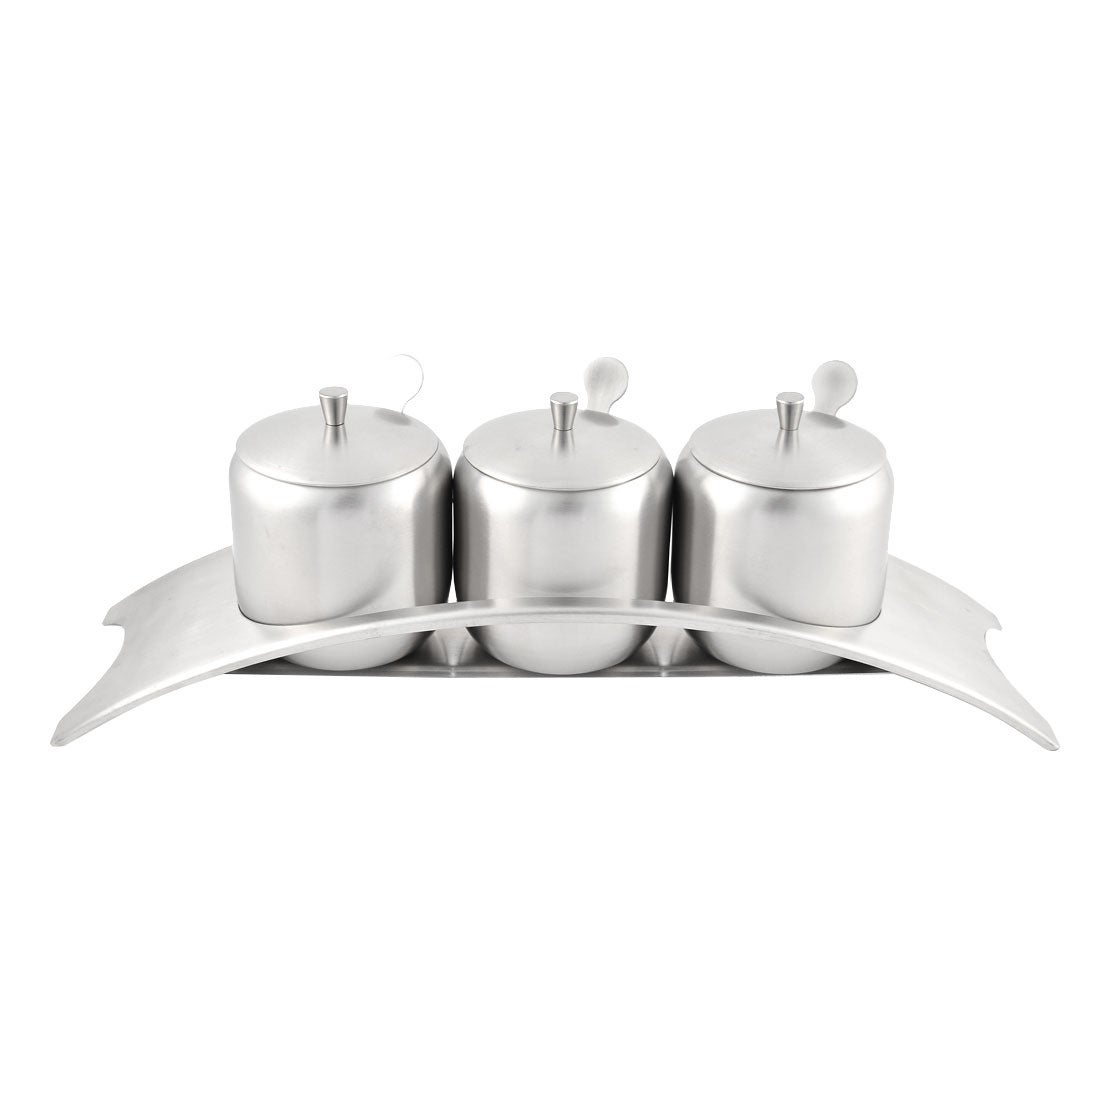 Unique Bargains Stainless Steel Condiment Spice Server Container Jar Set w Pedestal